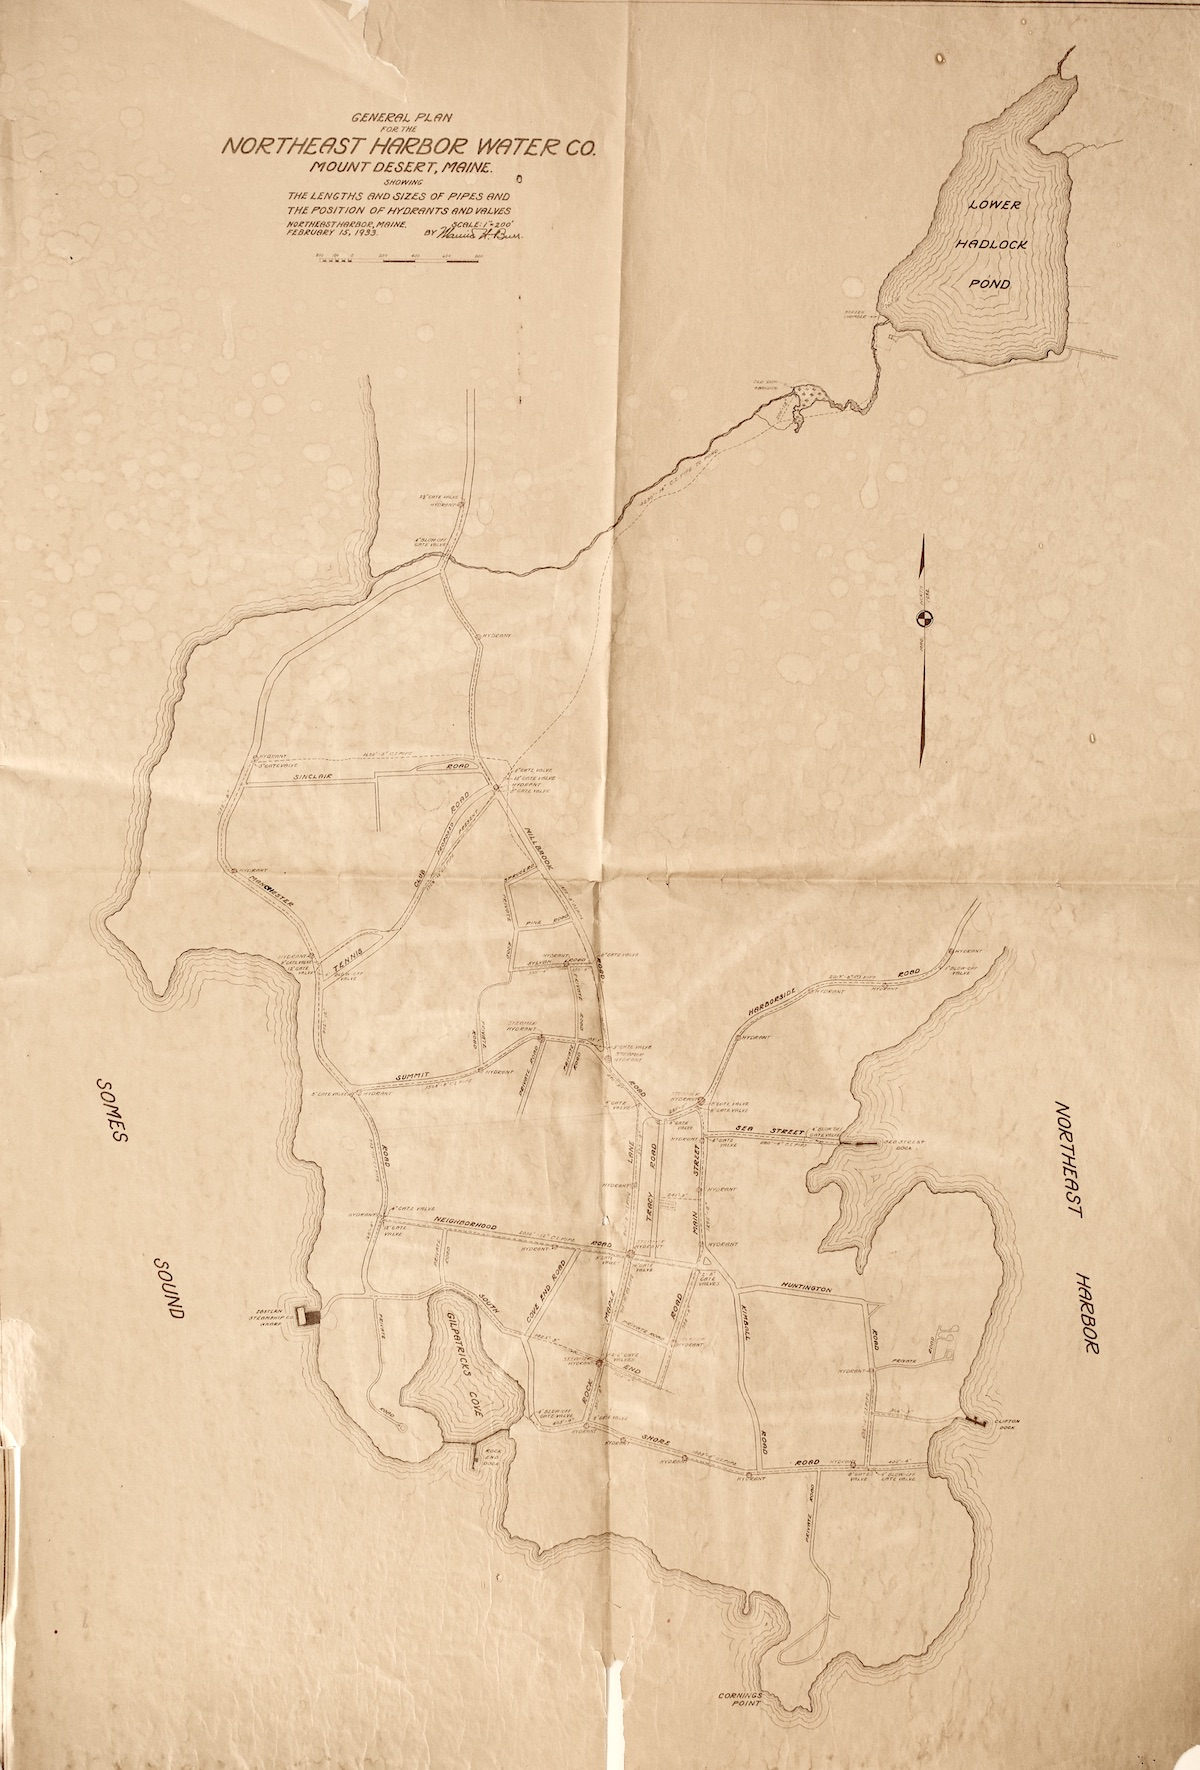 General Plan of the Northeast Harbor Water Co.